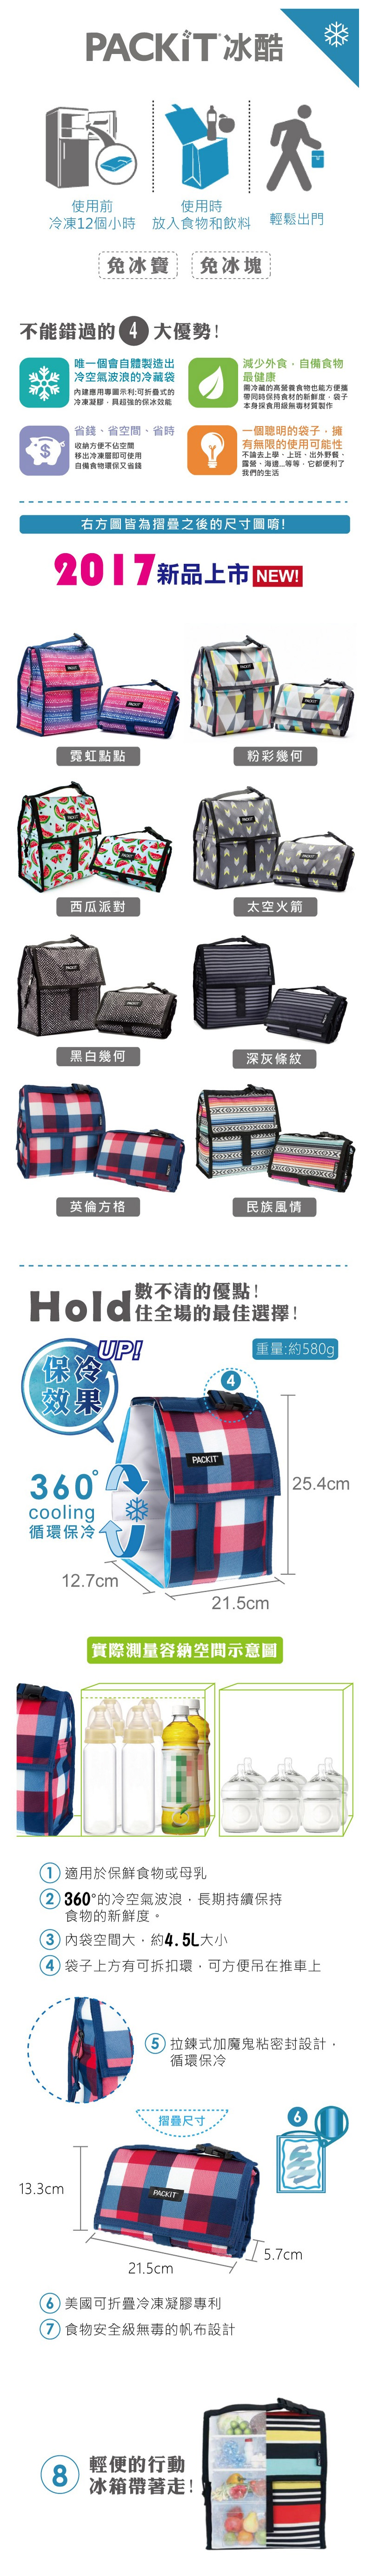 PACKiT多功能冷藏袋info1